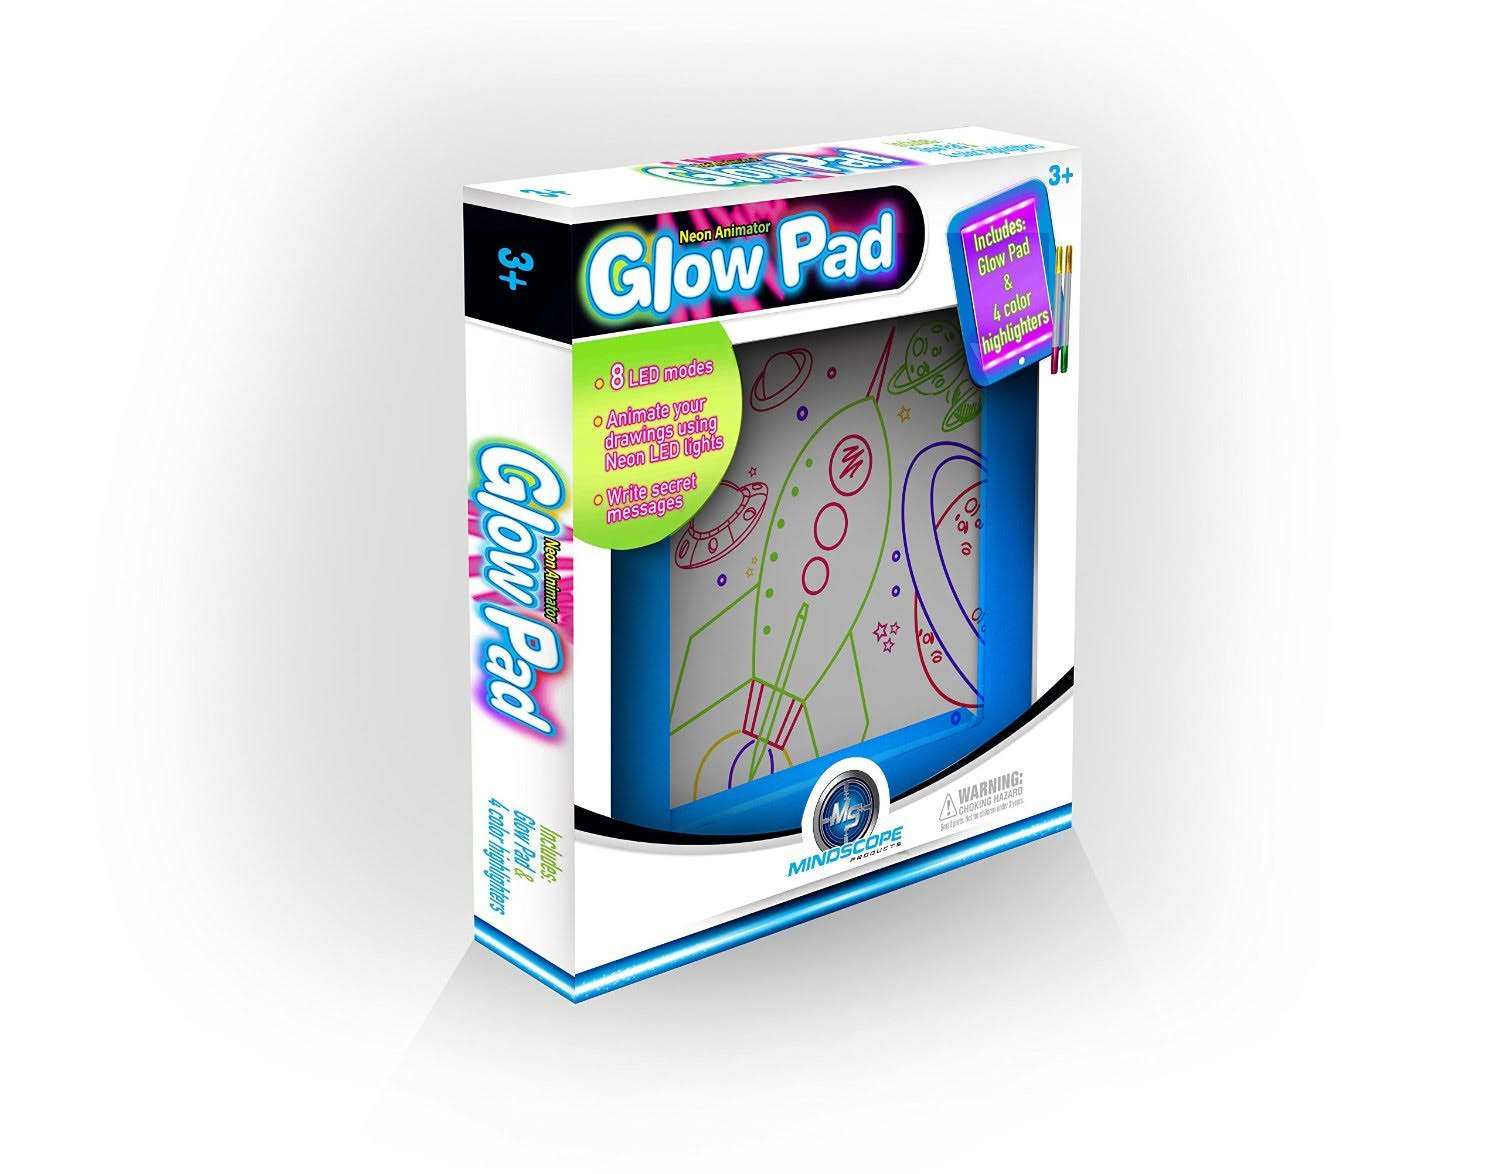 Mindscope Glow Pad Neon Animator with Markers, Pink